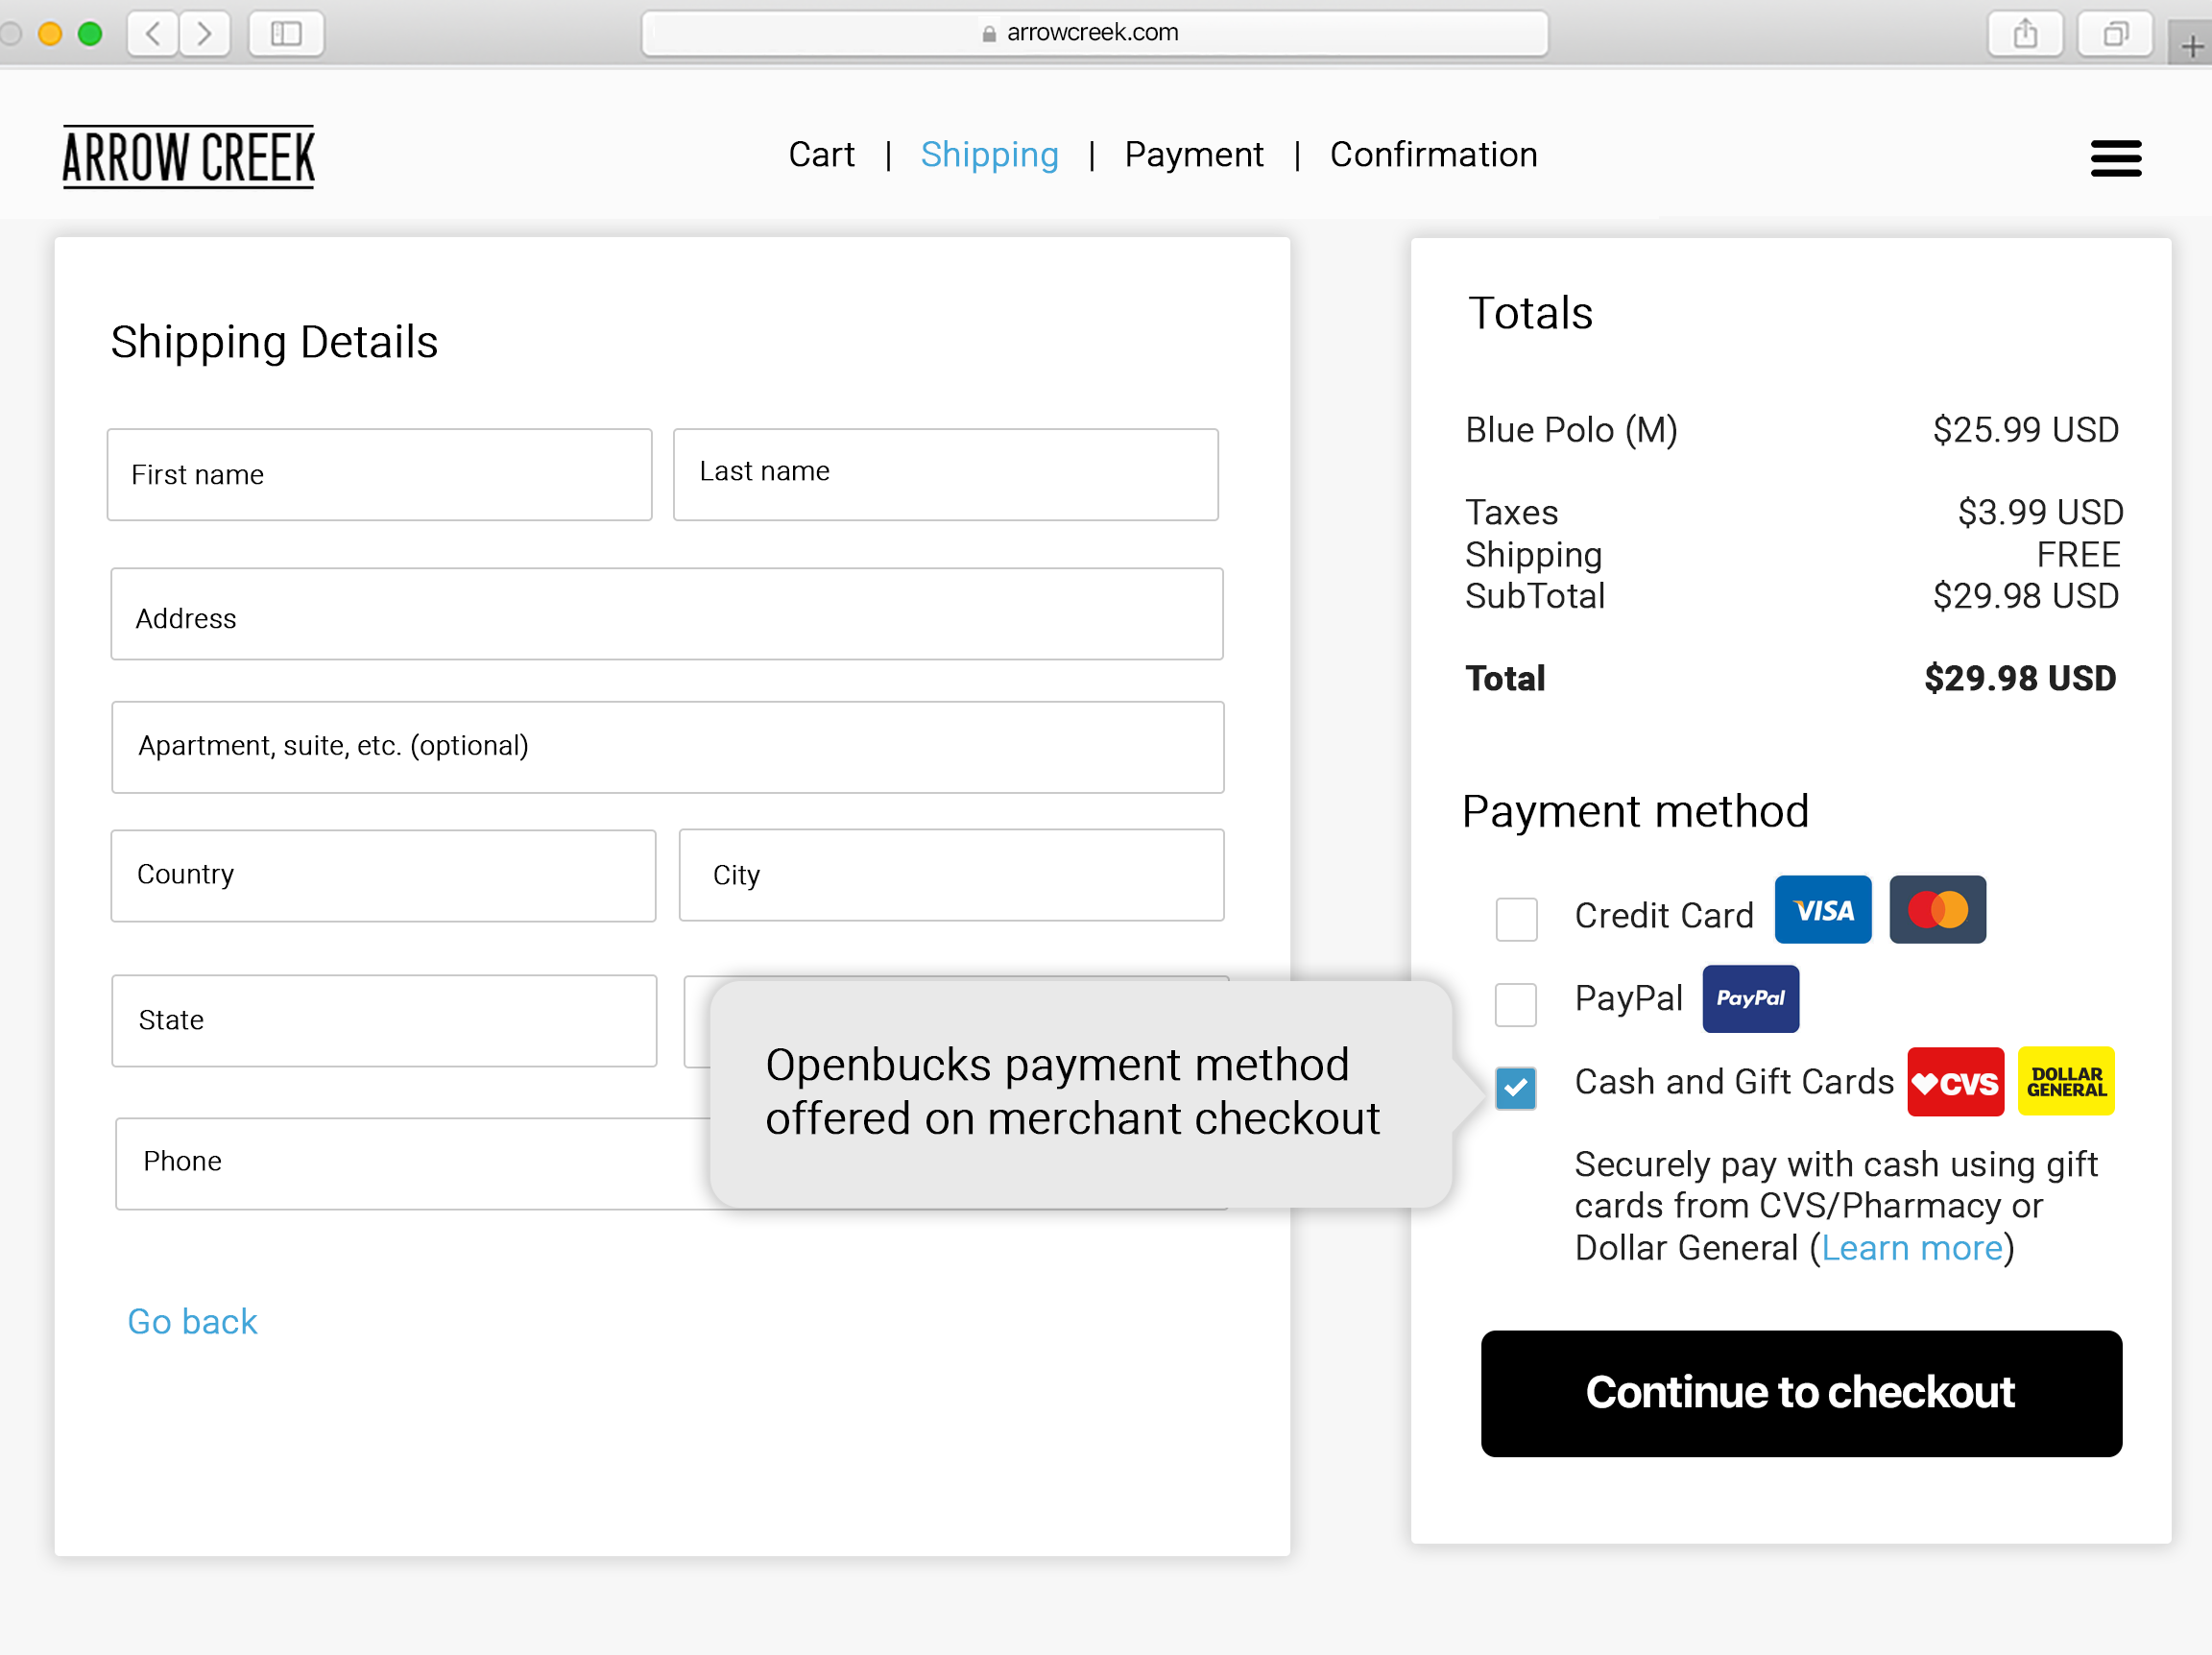 Openbucks payment method offered on merchant checkout